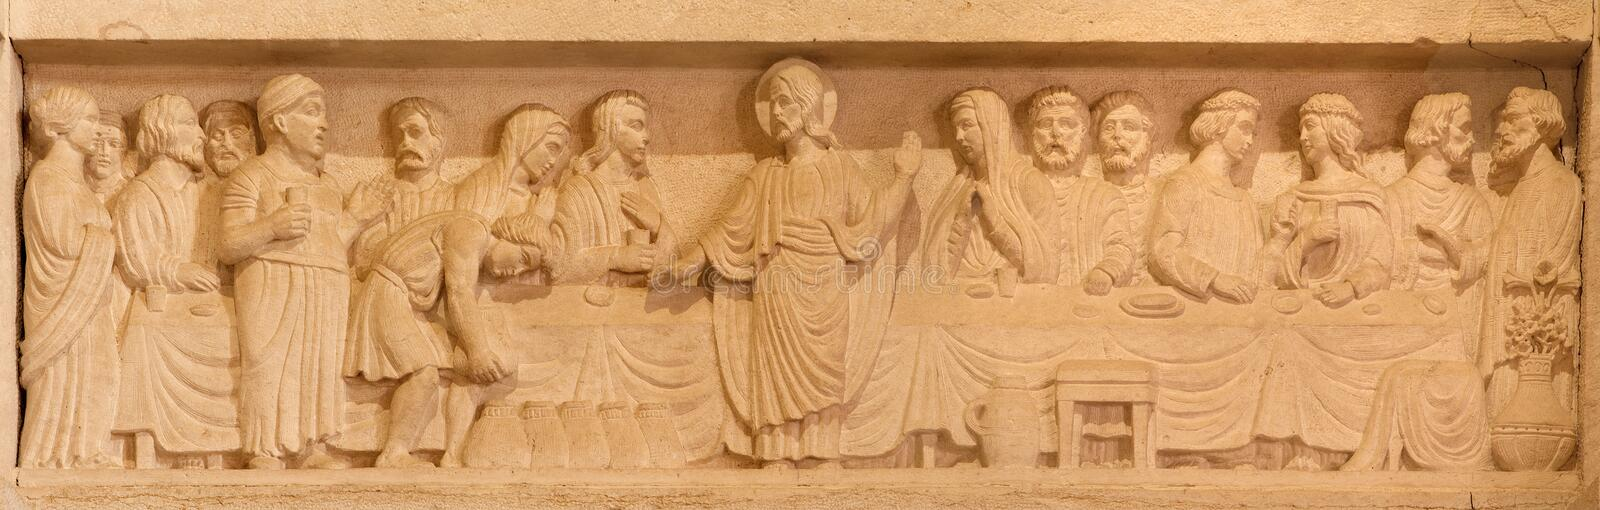 Jerusalem - The Marriage at Cana relief in Evangelical Lutheran Church of Ascension. JERUSALEM, ISRAEL - MARCH 3, 2015: The Marriage at Cana relief in royalty free stock photo